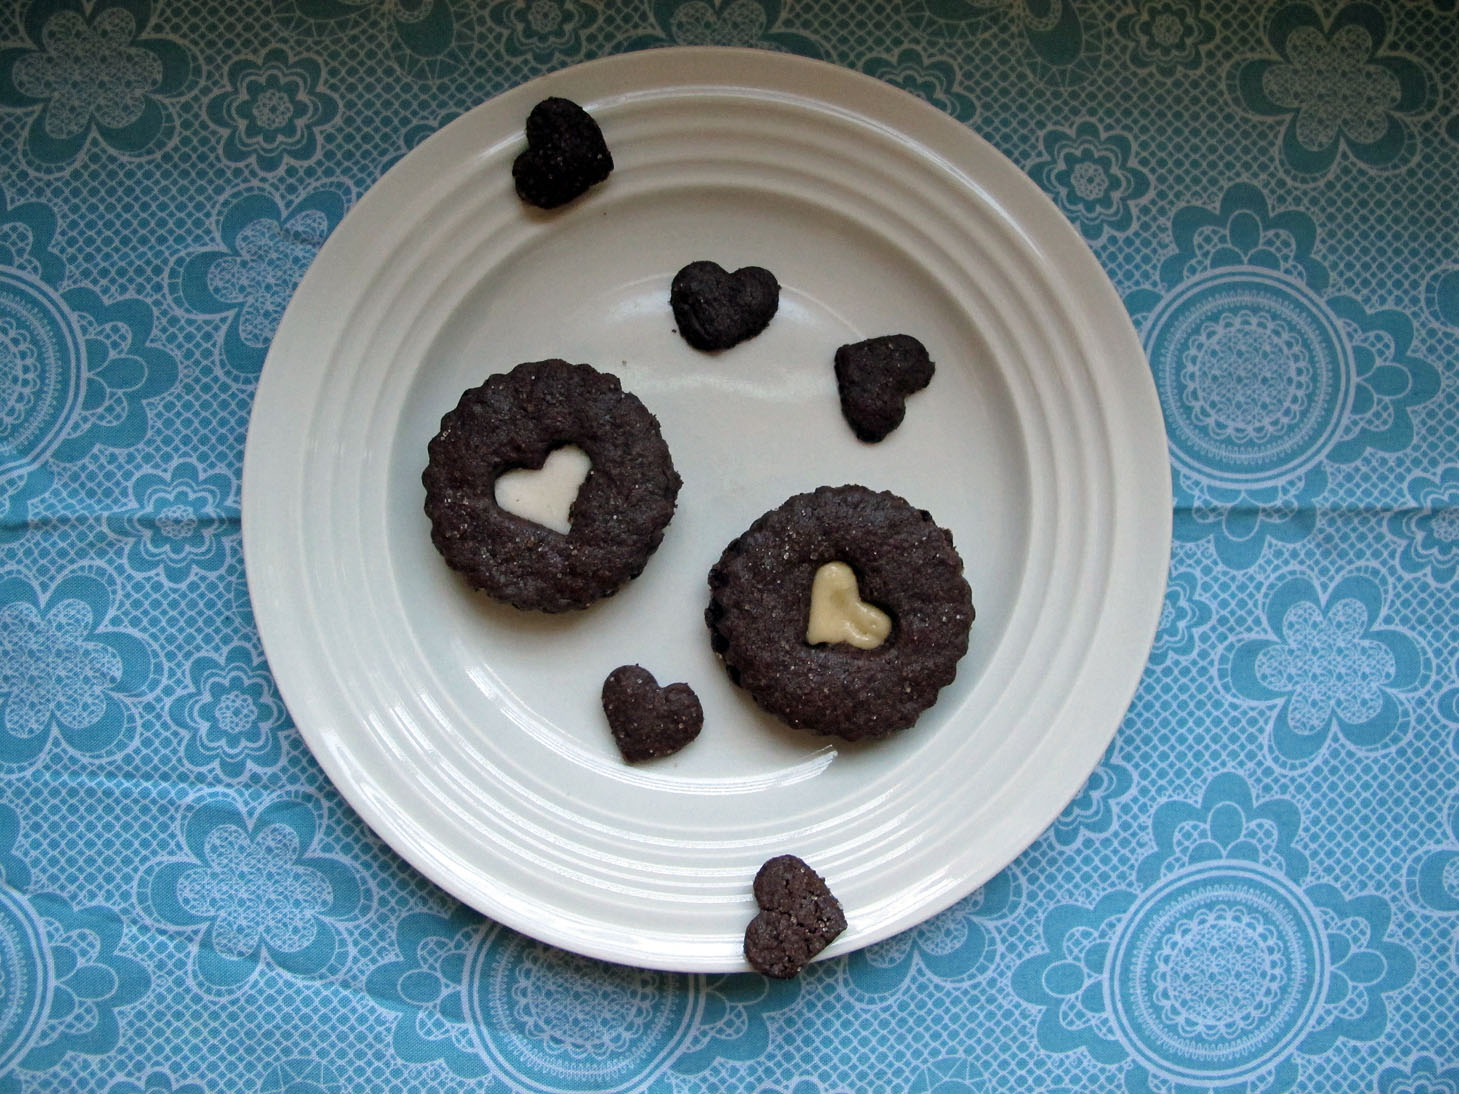 meadows cooks healthy recipes: chocolate sable linzer cookies